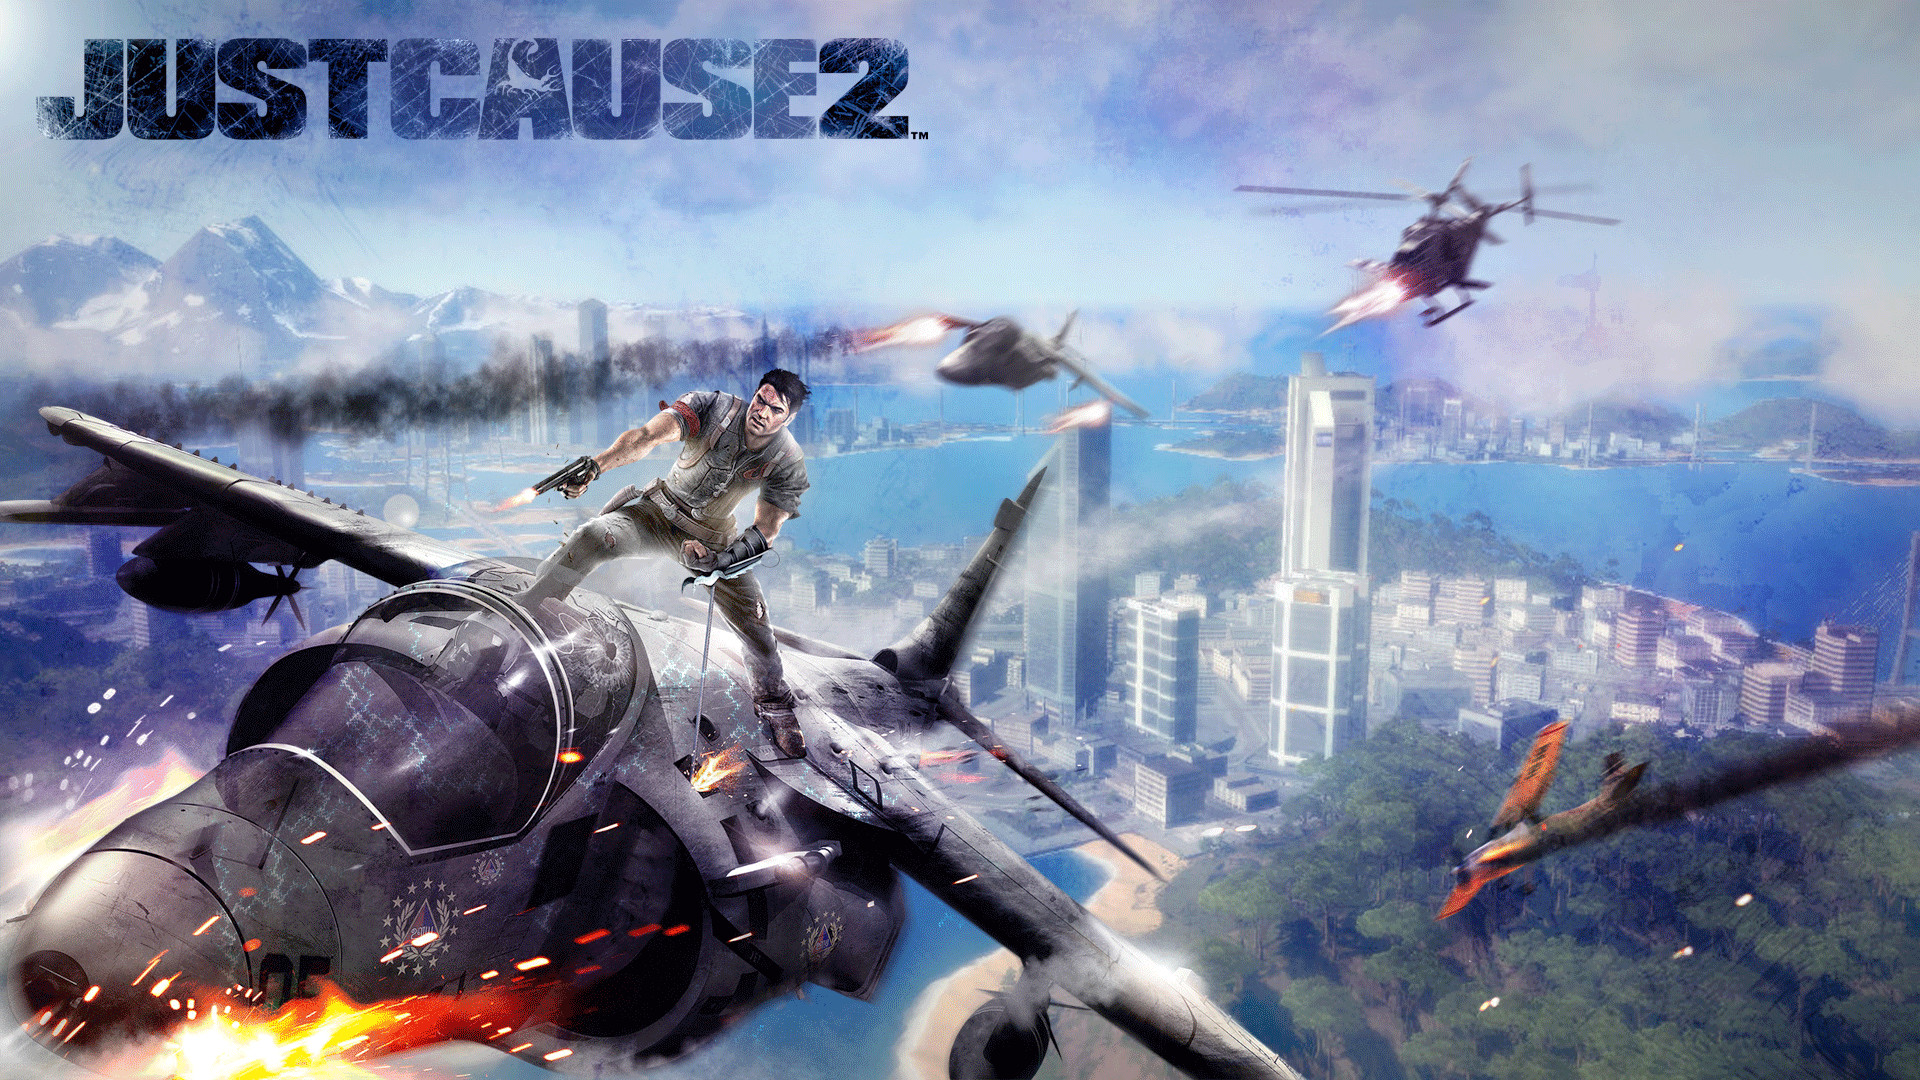 Just Cause 4 Wallpaper: Just Cause 2 Wallpapers (68+ Images